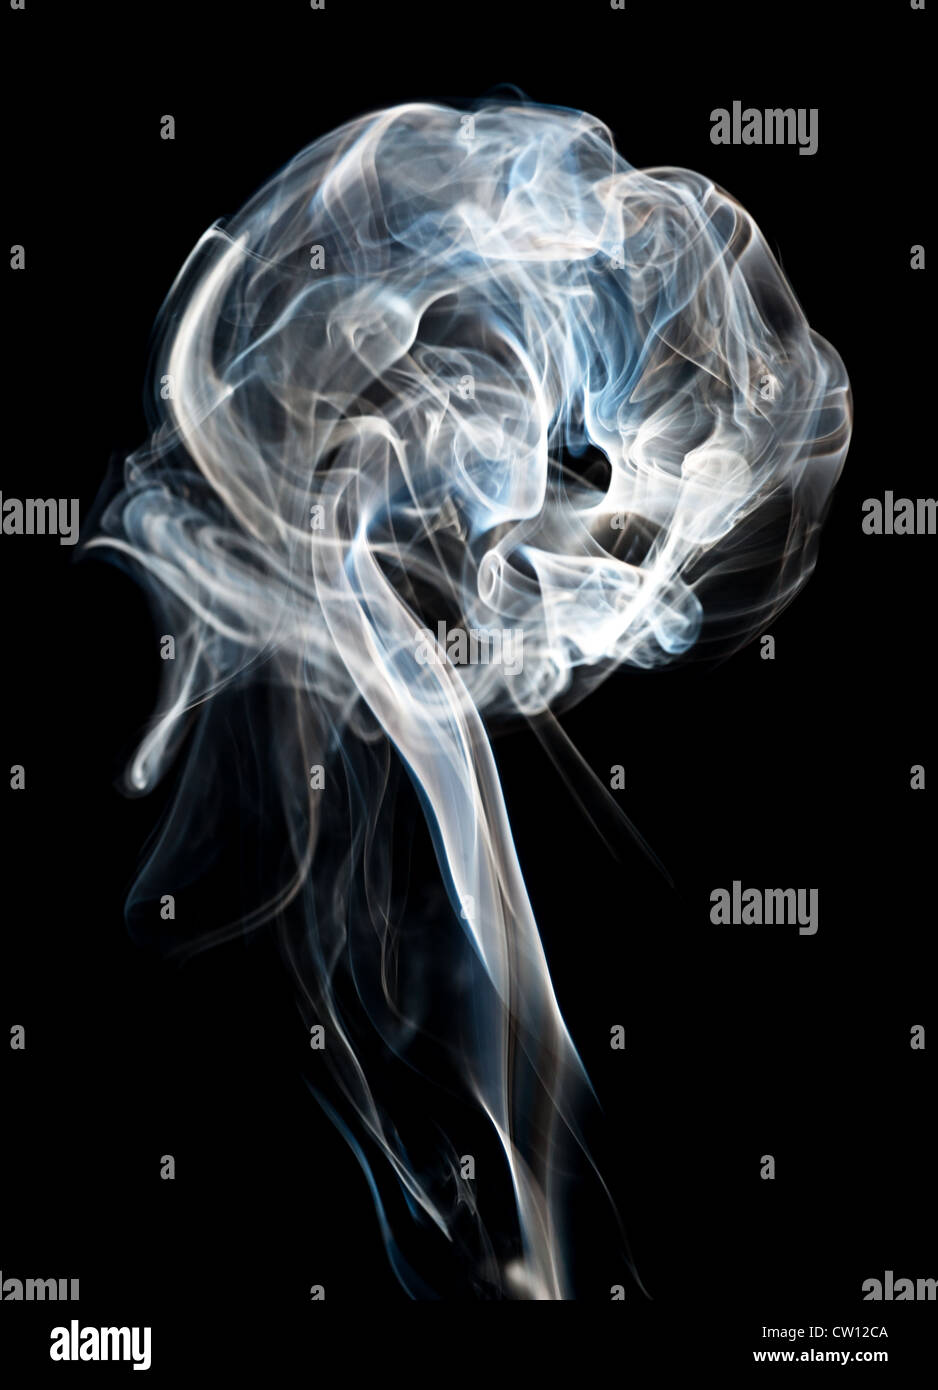 A plume of cigarette smoke against a black background. - Stock Image